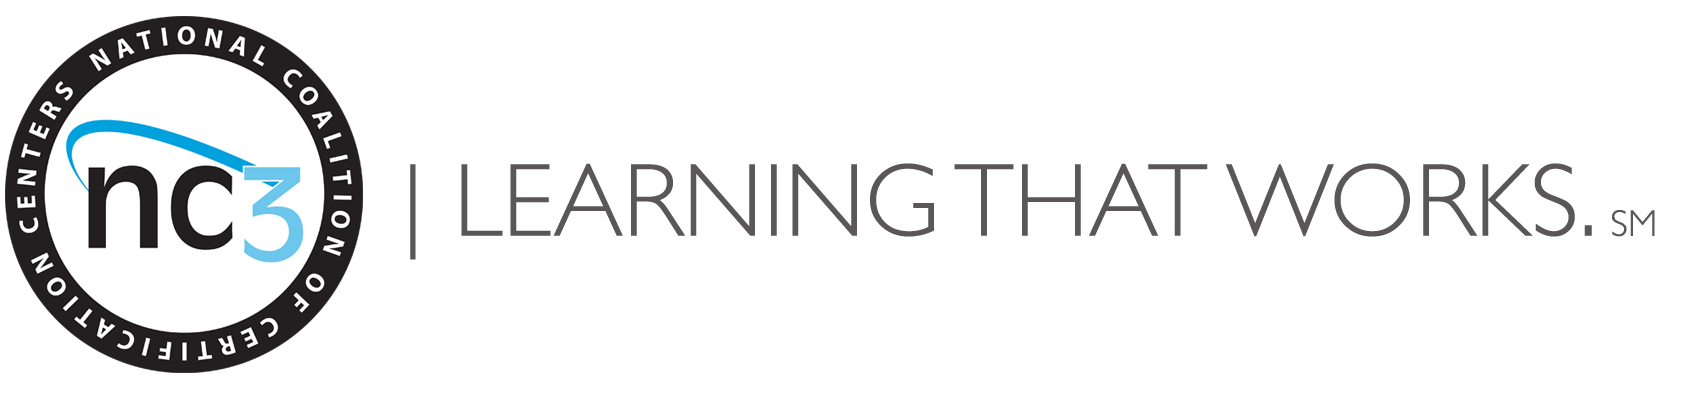 nc3-learning-that-works-logo-1700x393